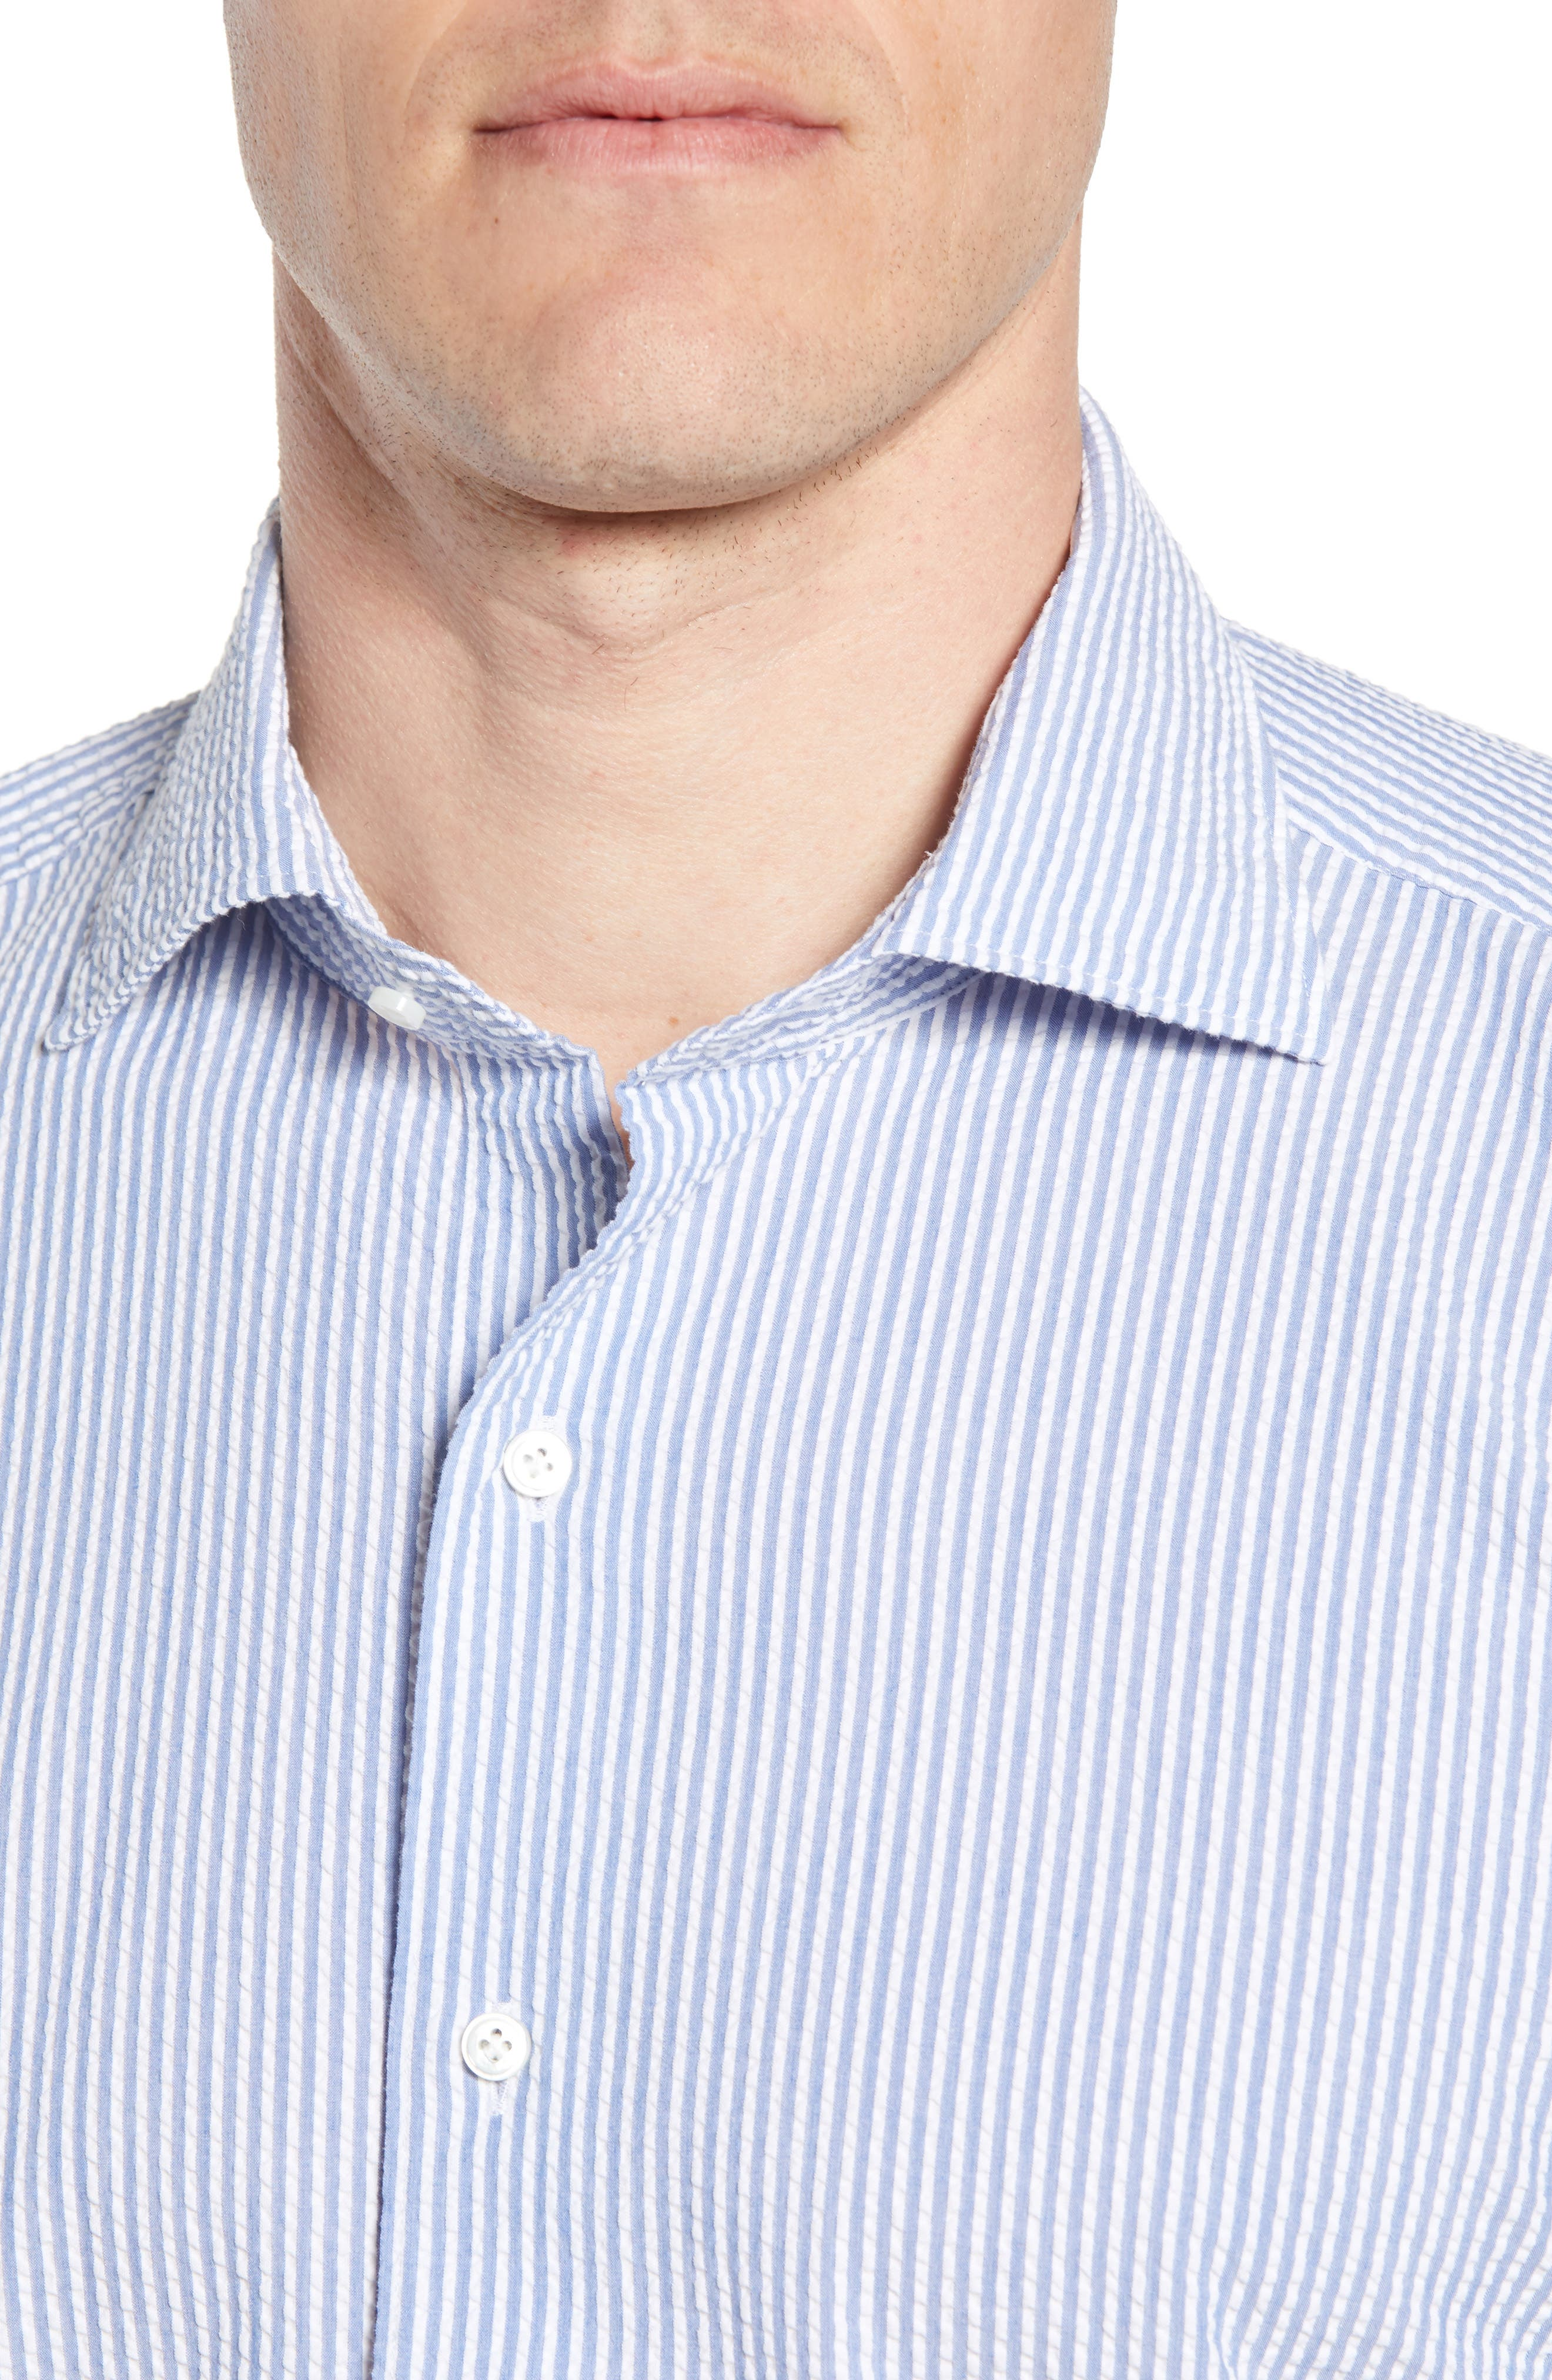 Summertime Stripe Seersucker Sport Shirt,                             Alternate thumbnail 4, color,                             Blue Ceillo